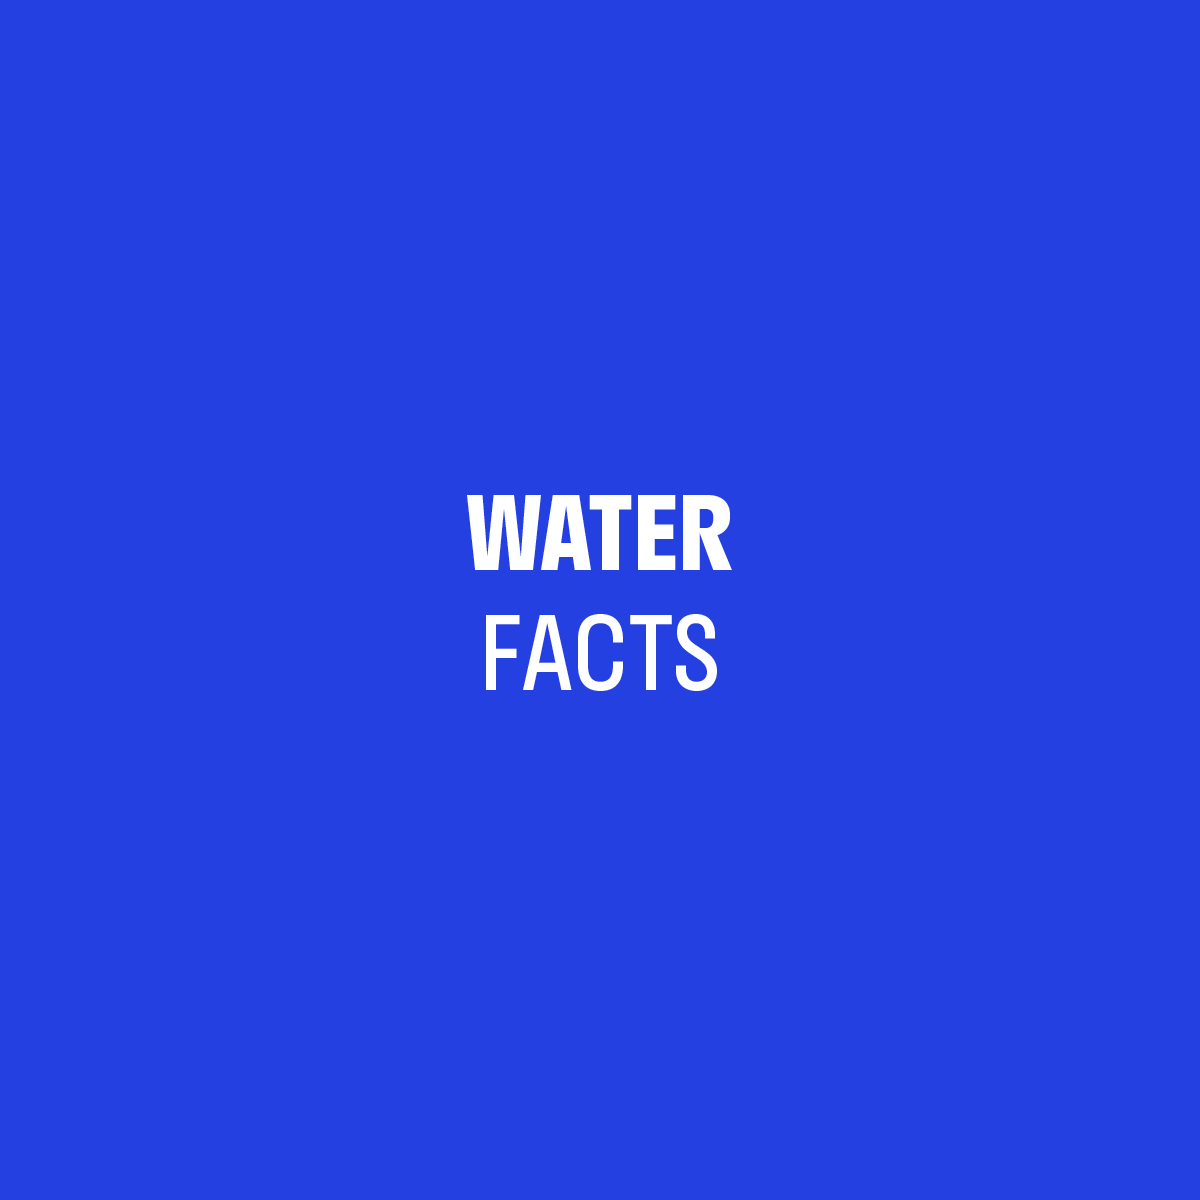 DripByDrip_FashionForWater_WorldWaterDay2019_Facts-Water_0.png